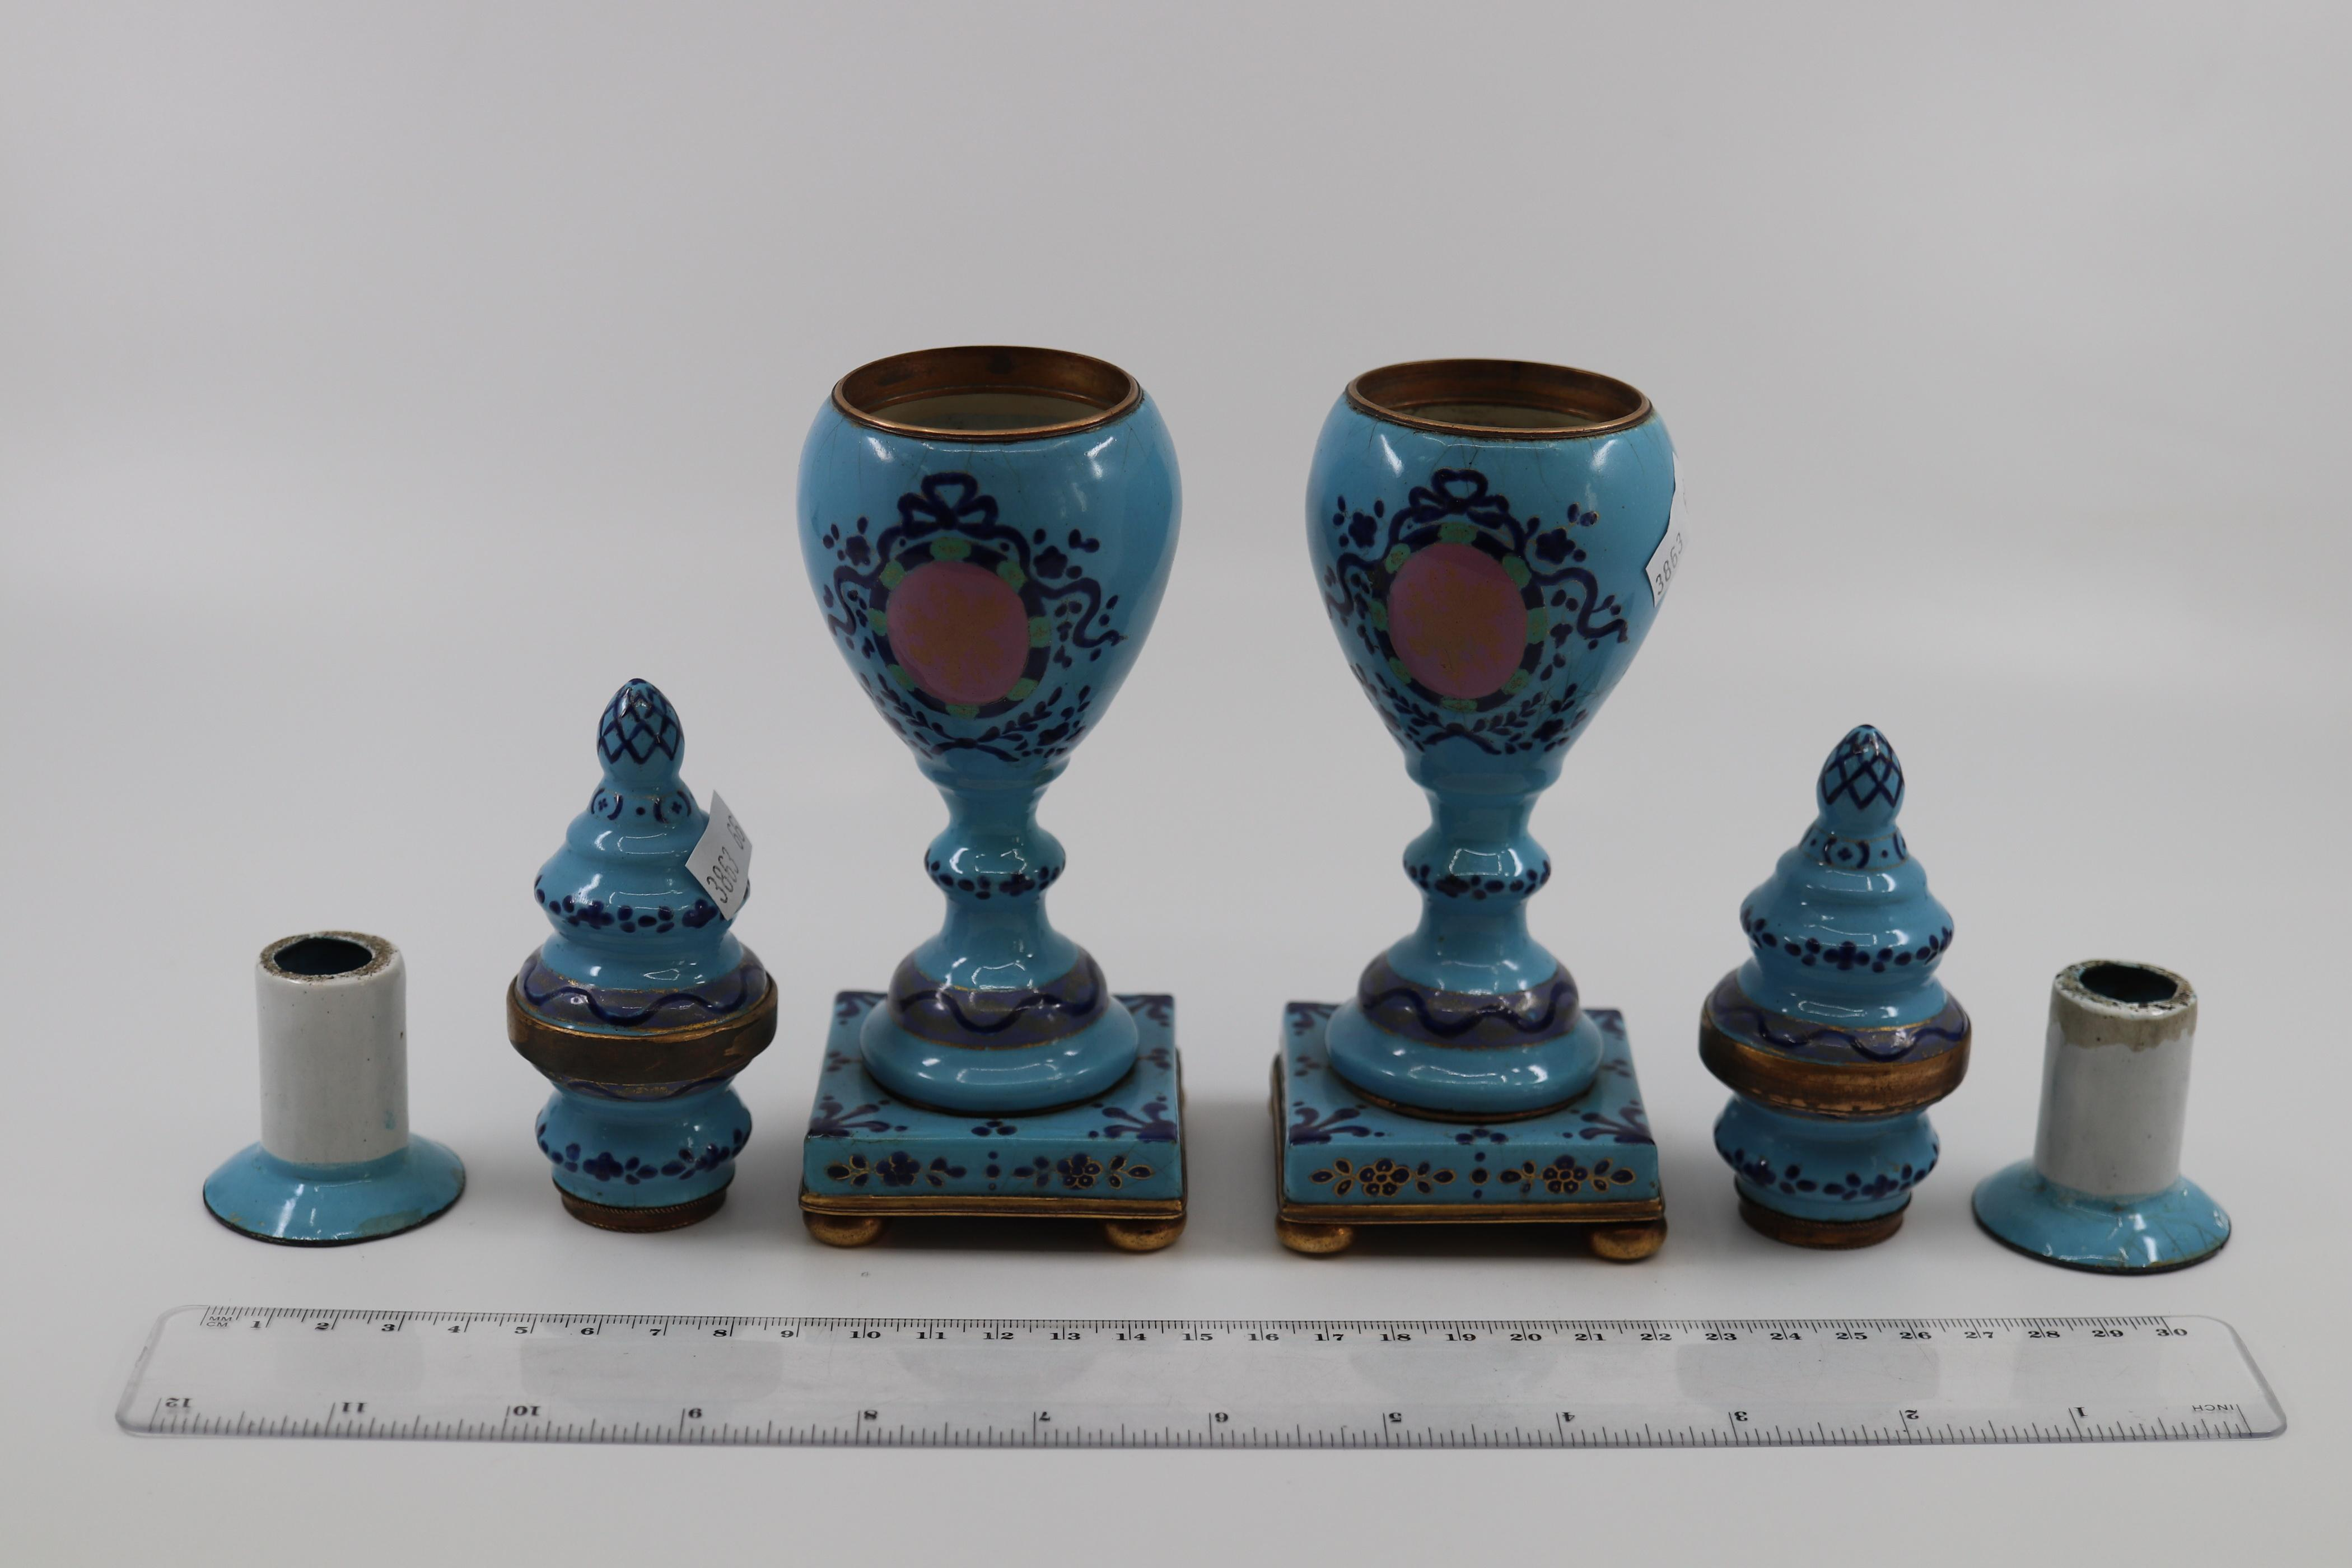 PAIR OF LATE 18TH /EARLY 19TH CENTURY ENGLISH SOUTH STAFFORDSHIRE BLUE ENAMEL CASSOLETTES INVERTED BAULSTER FORM WITH REVERSIBLE VASE/CANDLEHOLDERS ( SOME DAMAGES)